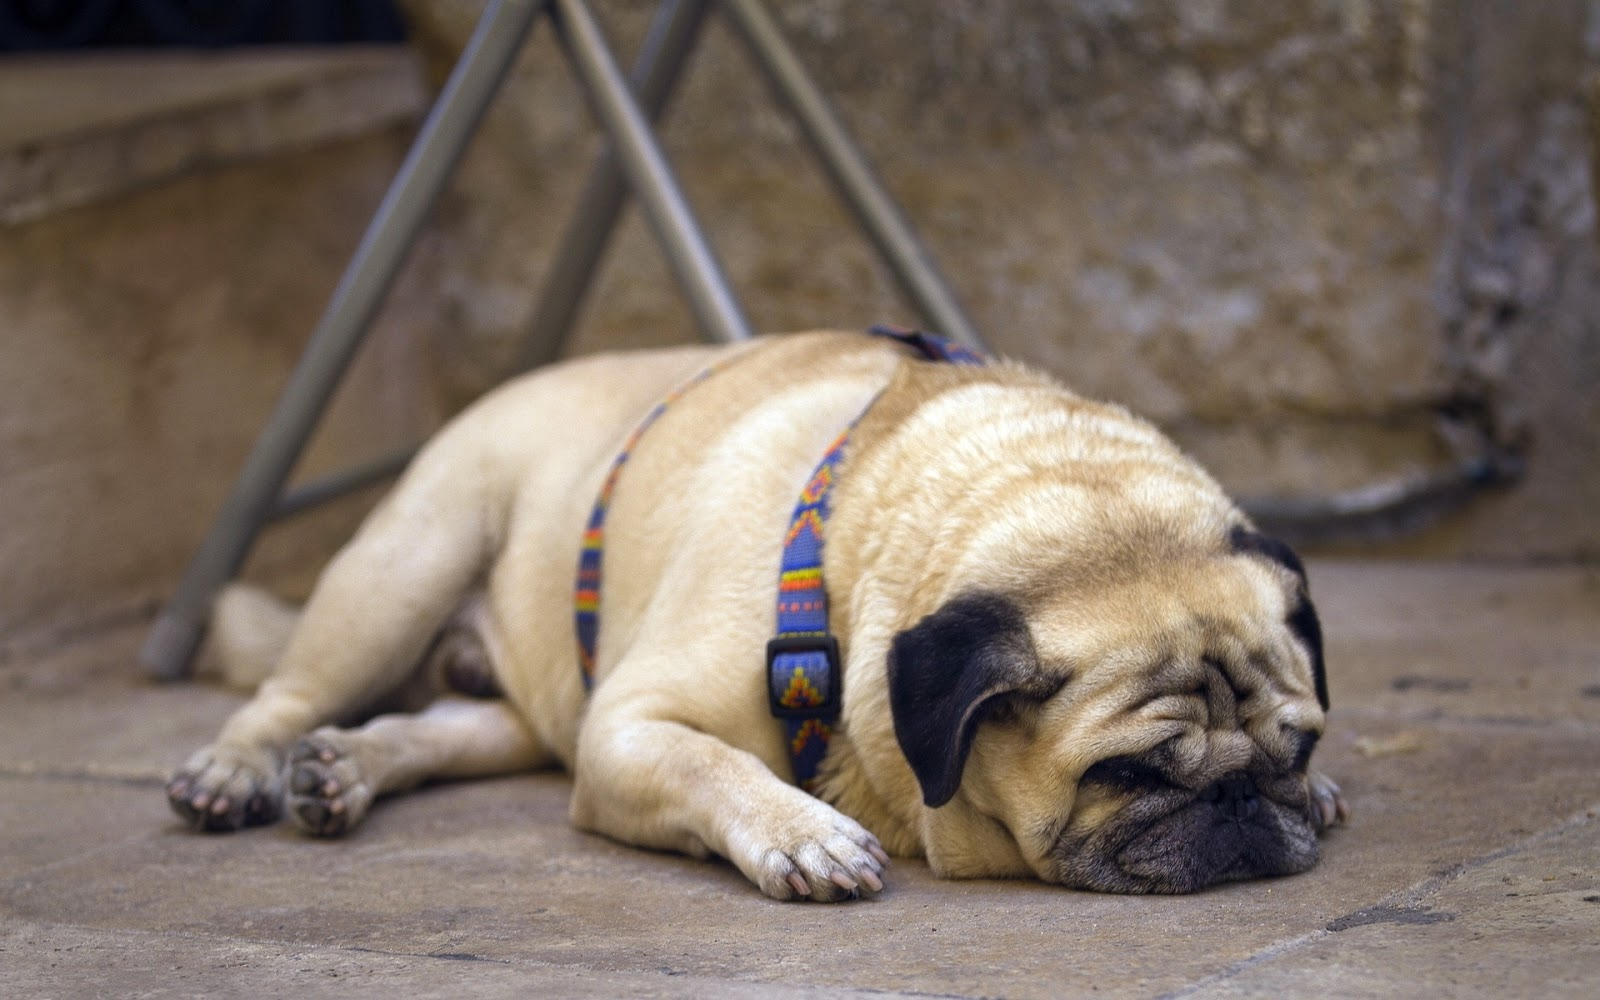 Cute Pug Puppies Wallpapers Pug Dog Best Hd Wallpapers 2013 All About Hd Wallpapers